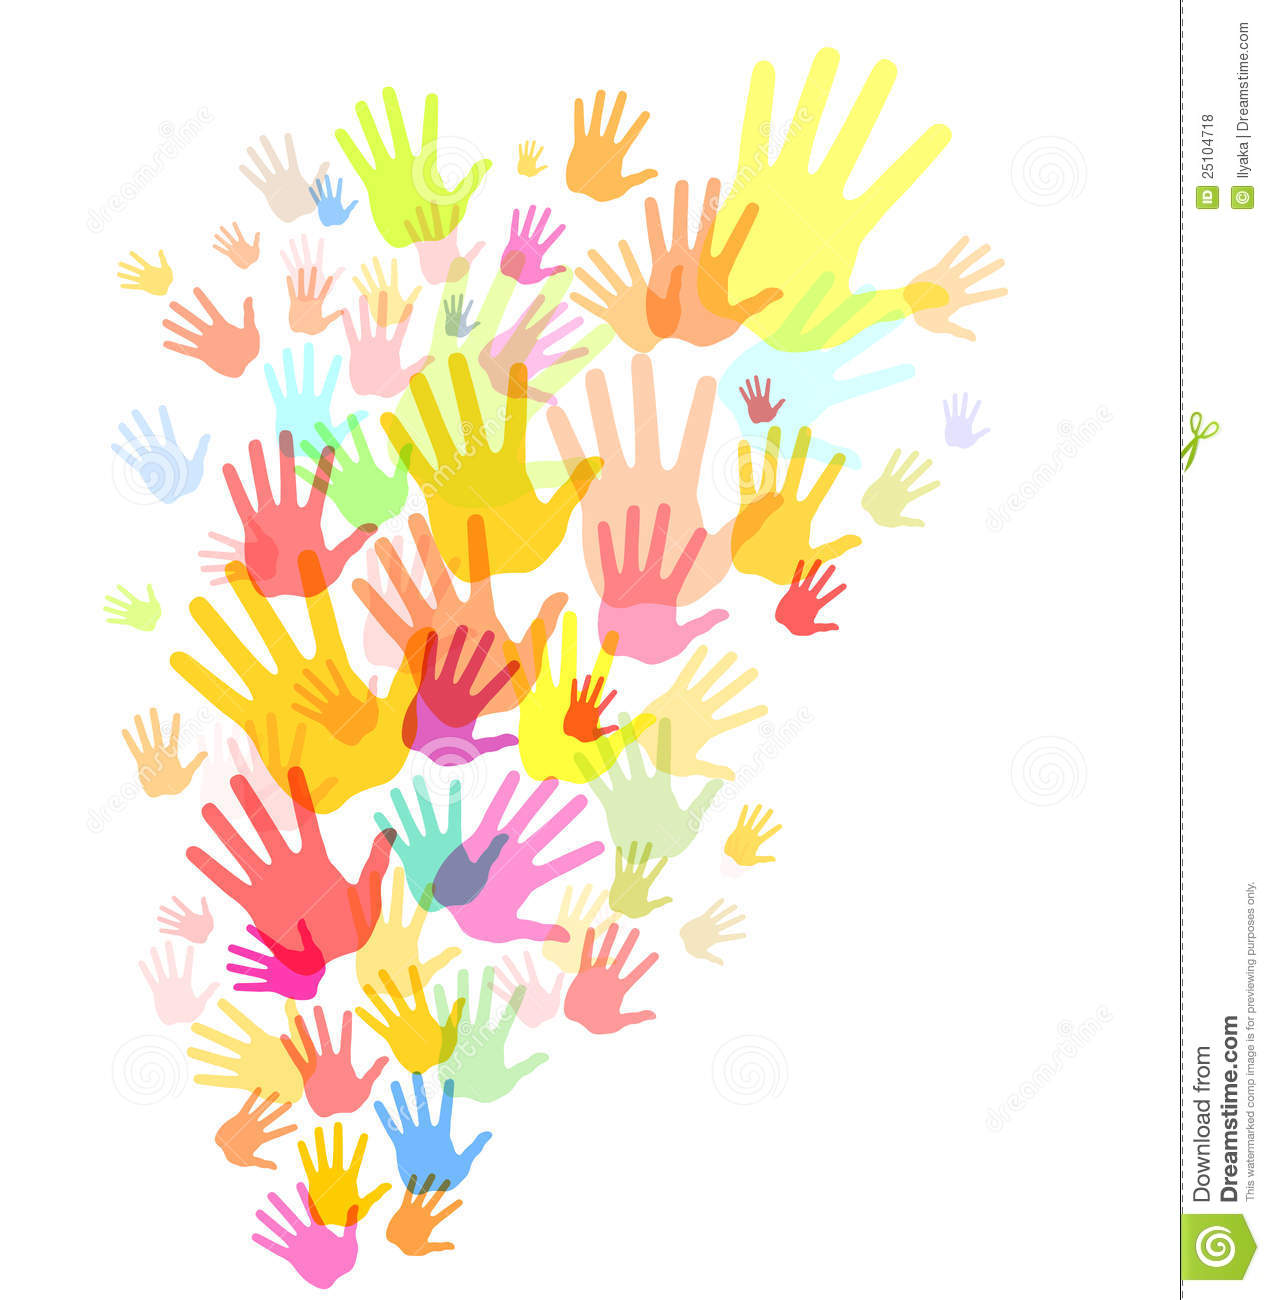 Pin Colorful Hand Drawings With Warm Color Hands And Cool